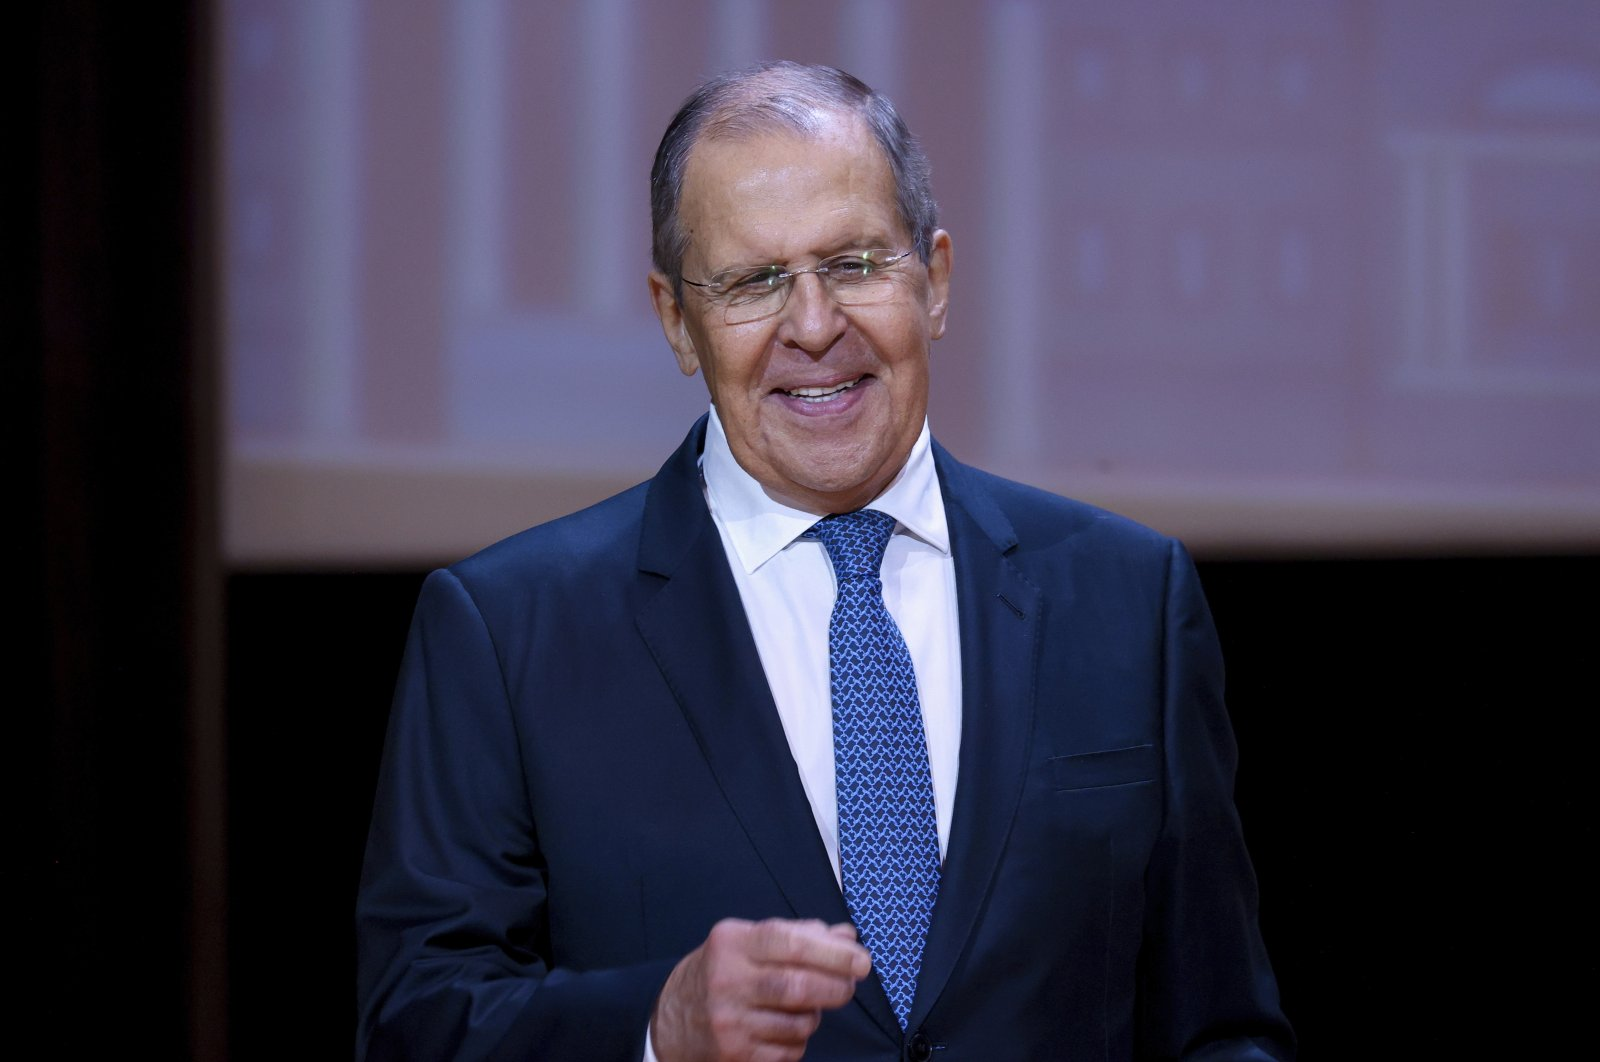 """Russian Foreign Minister Sergey Lavrov speaks at the prestigious Moscow State Institute of International Relations during the traditional opening of the school year known as """"Day of Knowledge"""" in Moscow, Russia, Sept. 1, 2021. (Russian Foreign Ministry Press Service via AP)"""